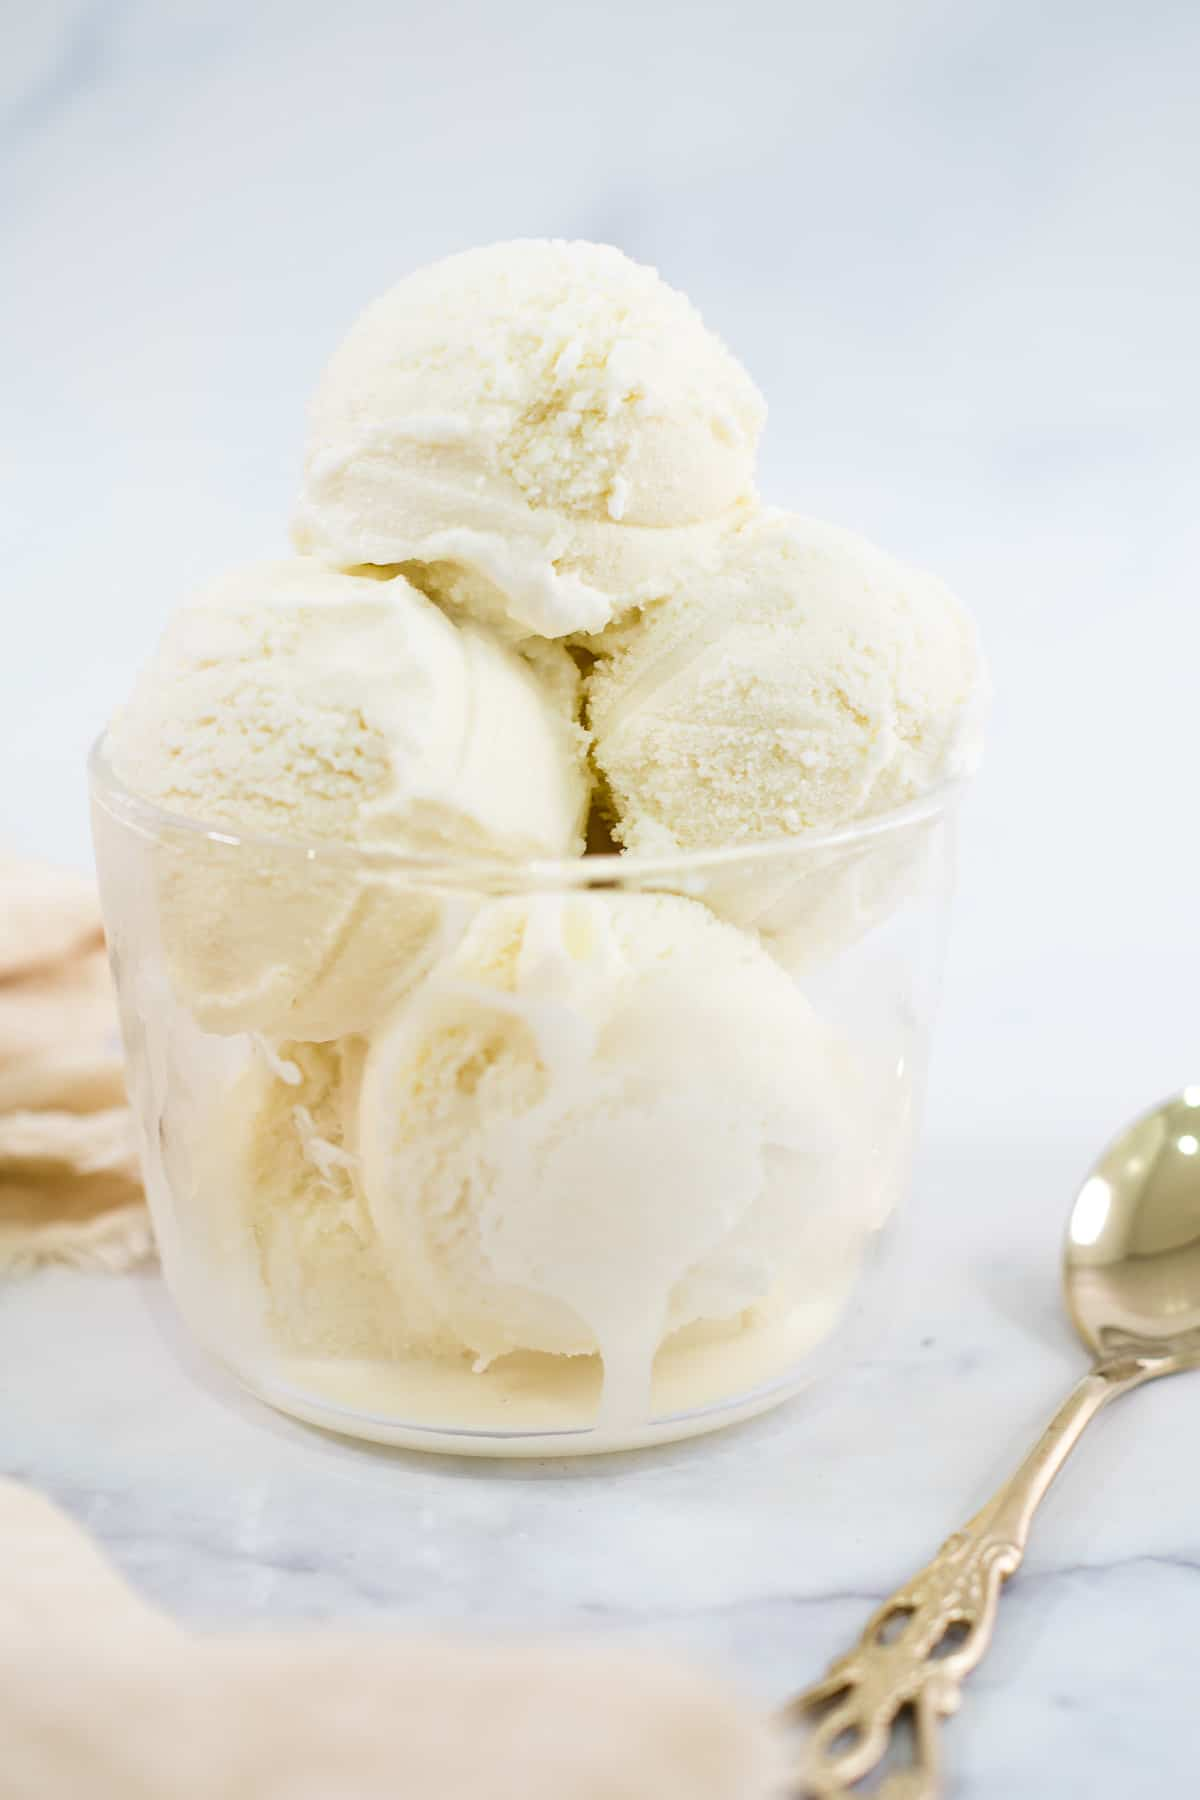 A glass bowl filled with vanilla ice cream scoops